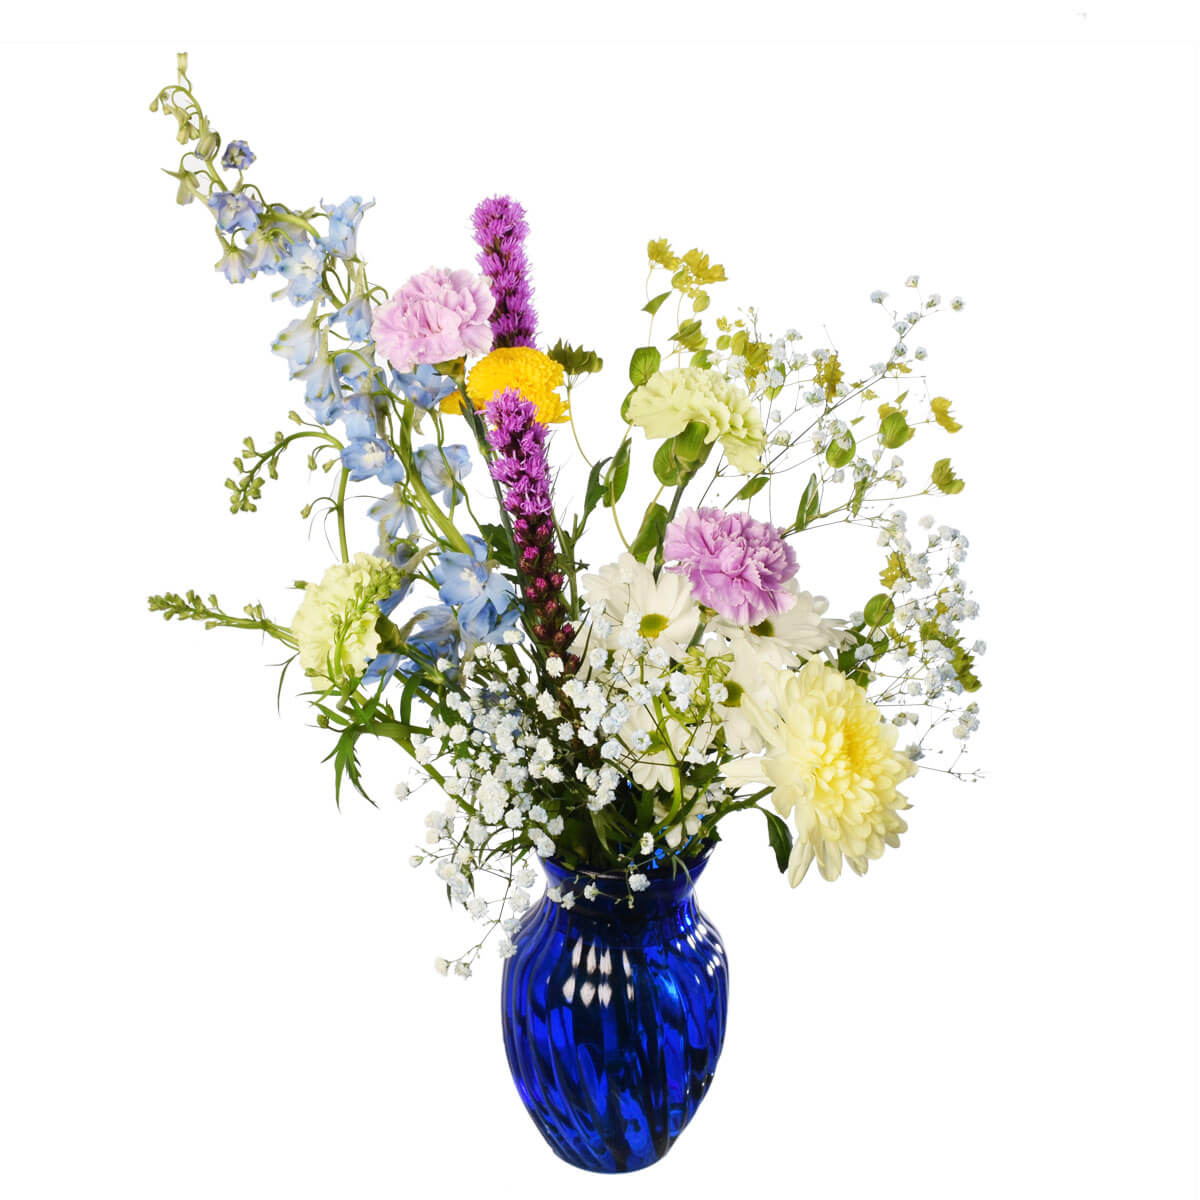 Burnaby best  Mother's Day Flower arrangement delivery from Adele Rae Florists.